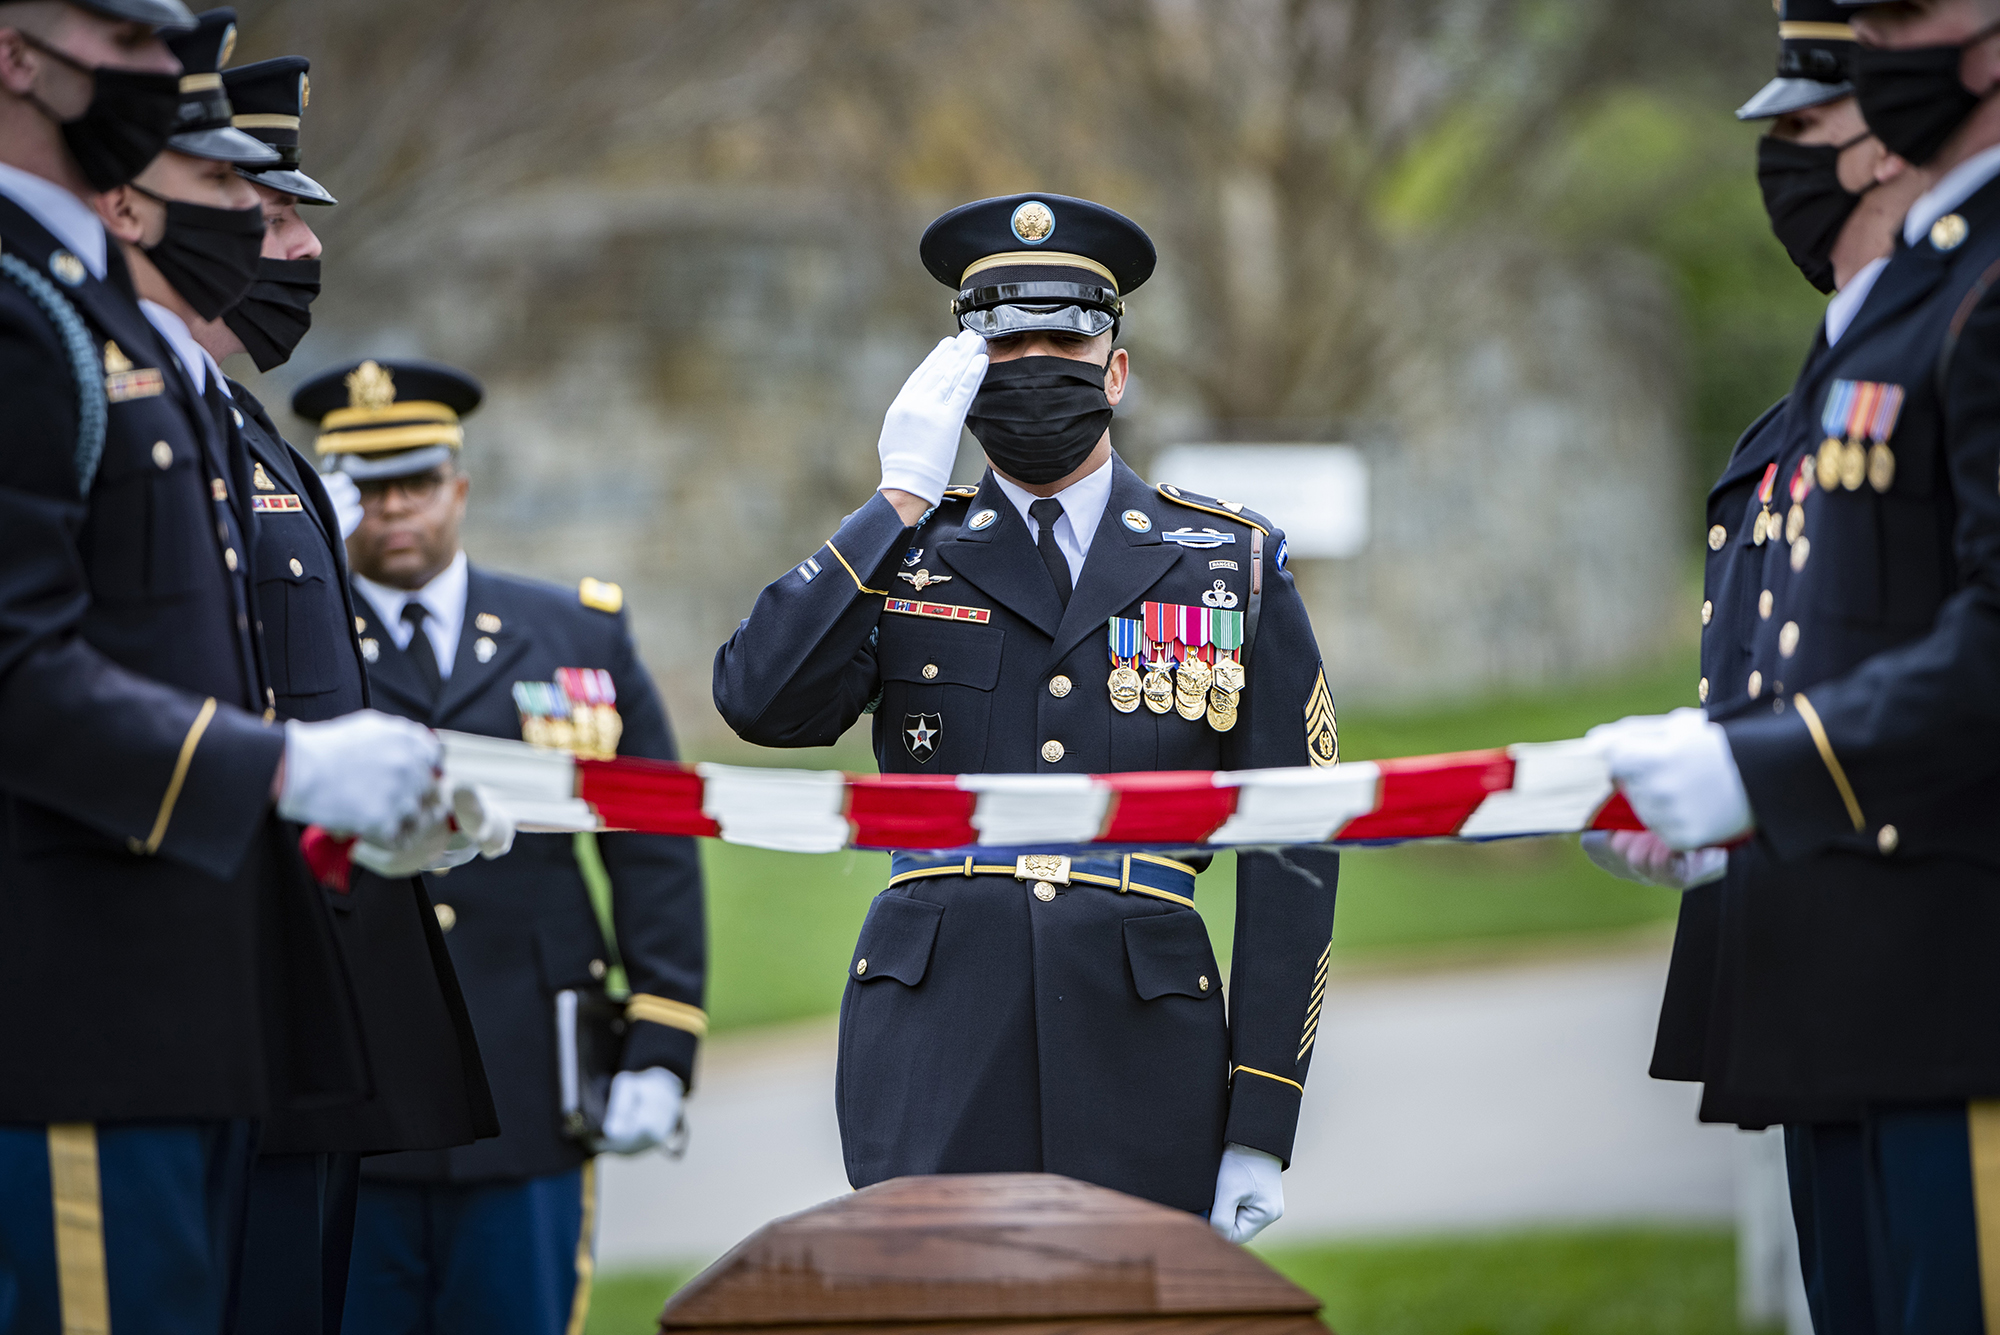 A soldier assigned to The Old Guard renders honors shortly after the chaplain provided his blessing April 14, 2020, during the funeral for retired Army Command Sgt. Maj. Robert M. Belch in Arlington National Cemetery, Arlington, Va. Given current health protection guidance from the secretary of defense, Old Guard soldiers wear face coverings to mitigate the spread of COVID-19 while executing the memorial affairs mission. (Elizabeth Fraser/Army)